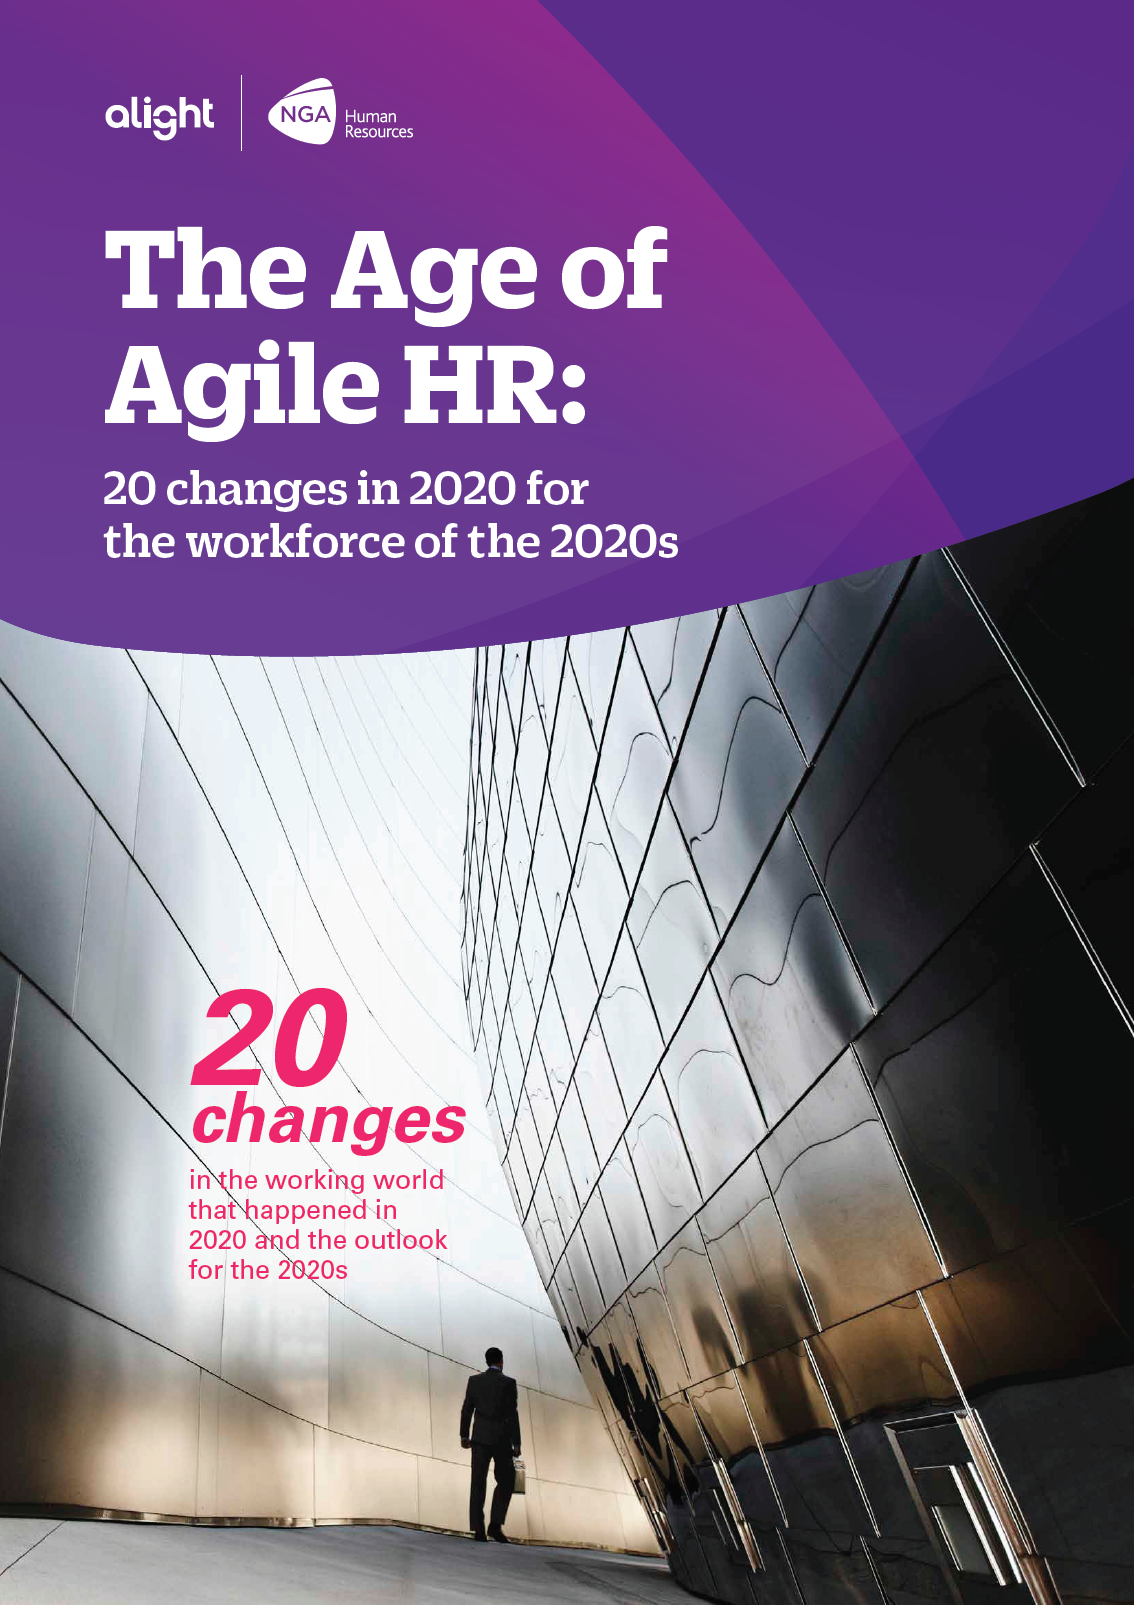 The Age of Agile HR